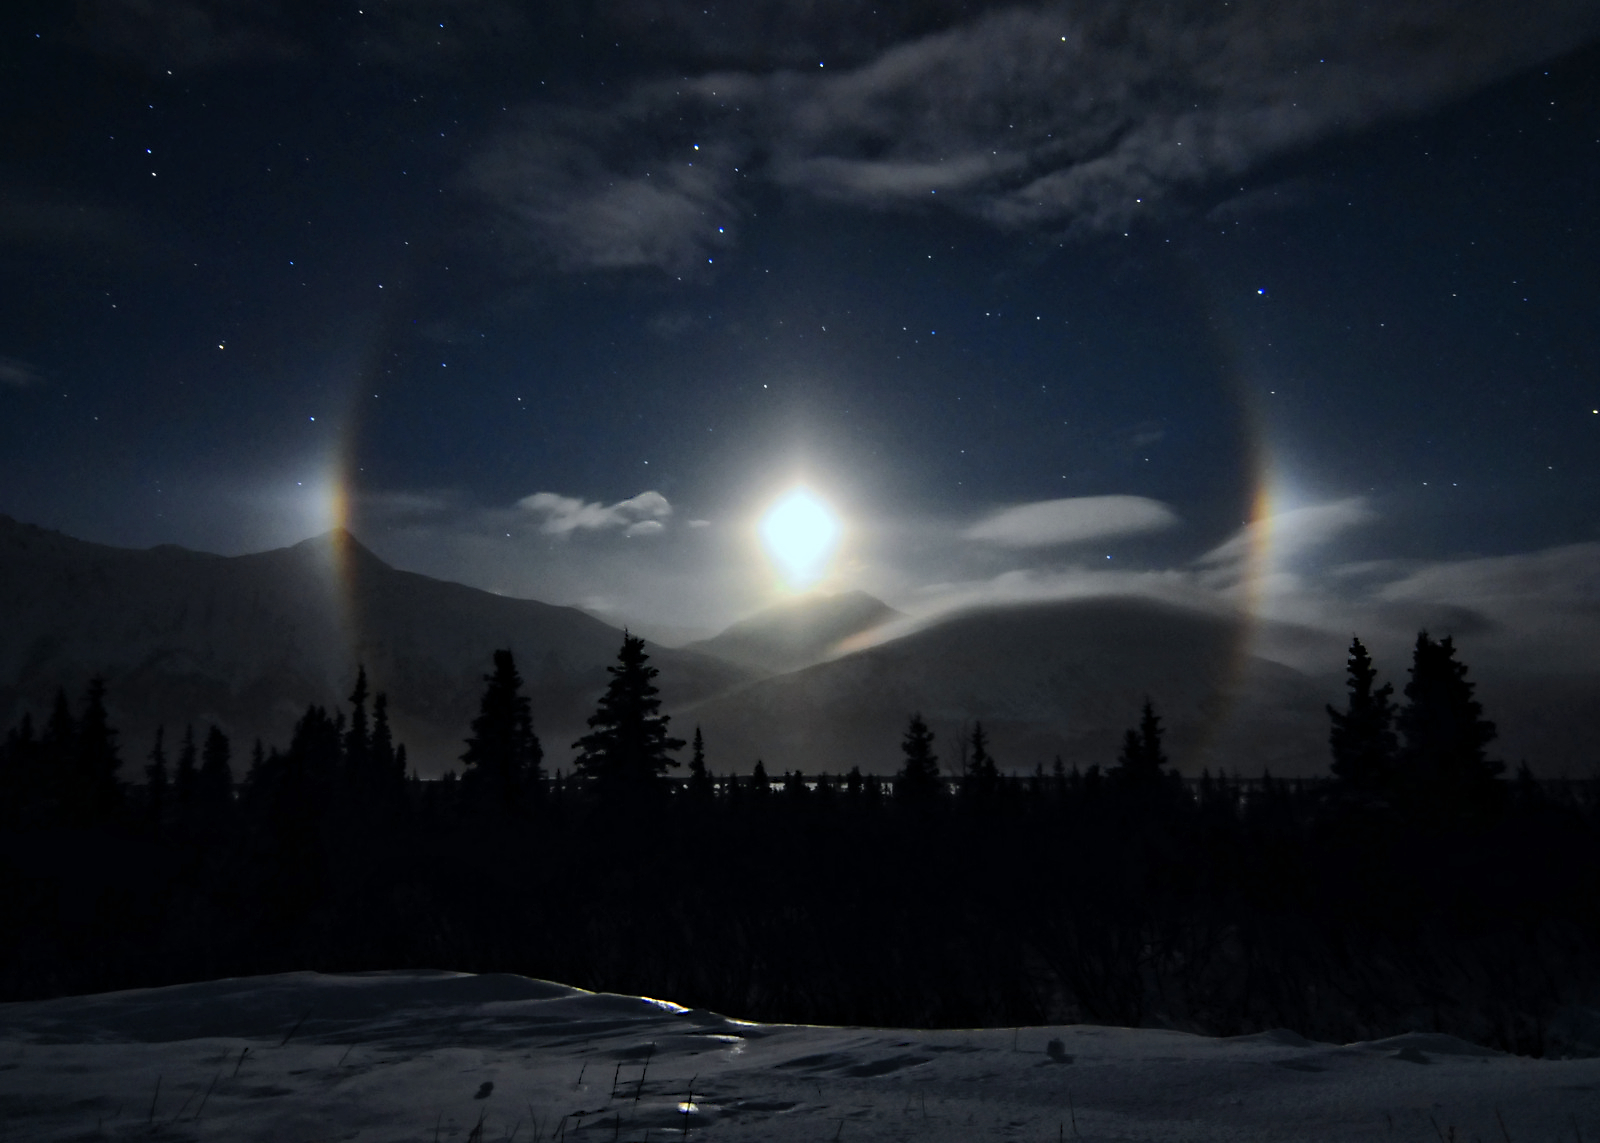 Dazzling 'Moondogs' Shine Over Alaska's Call of the Wild (Photo)